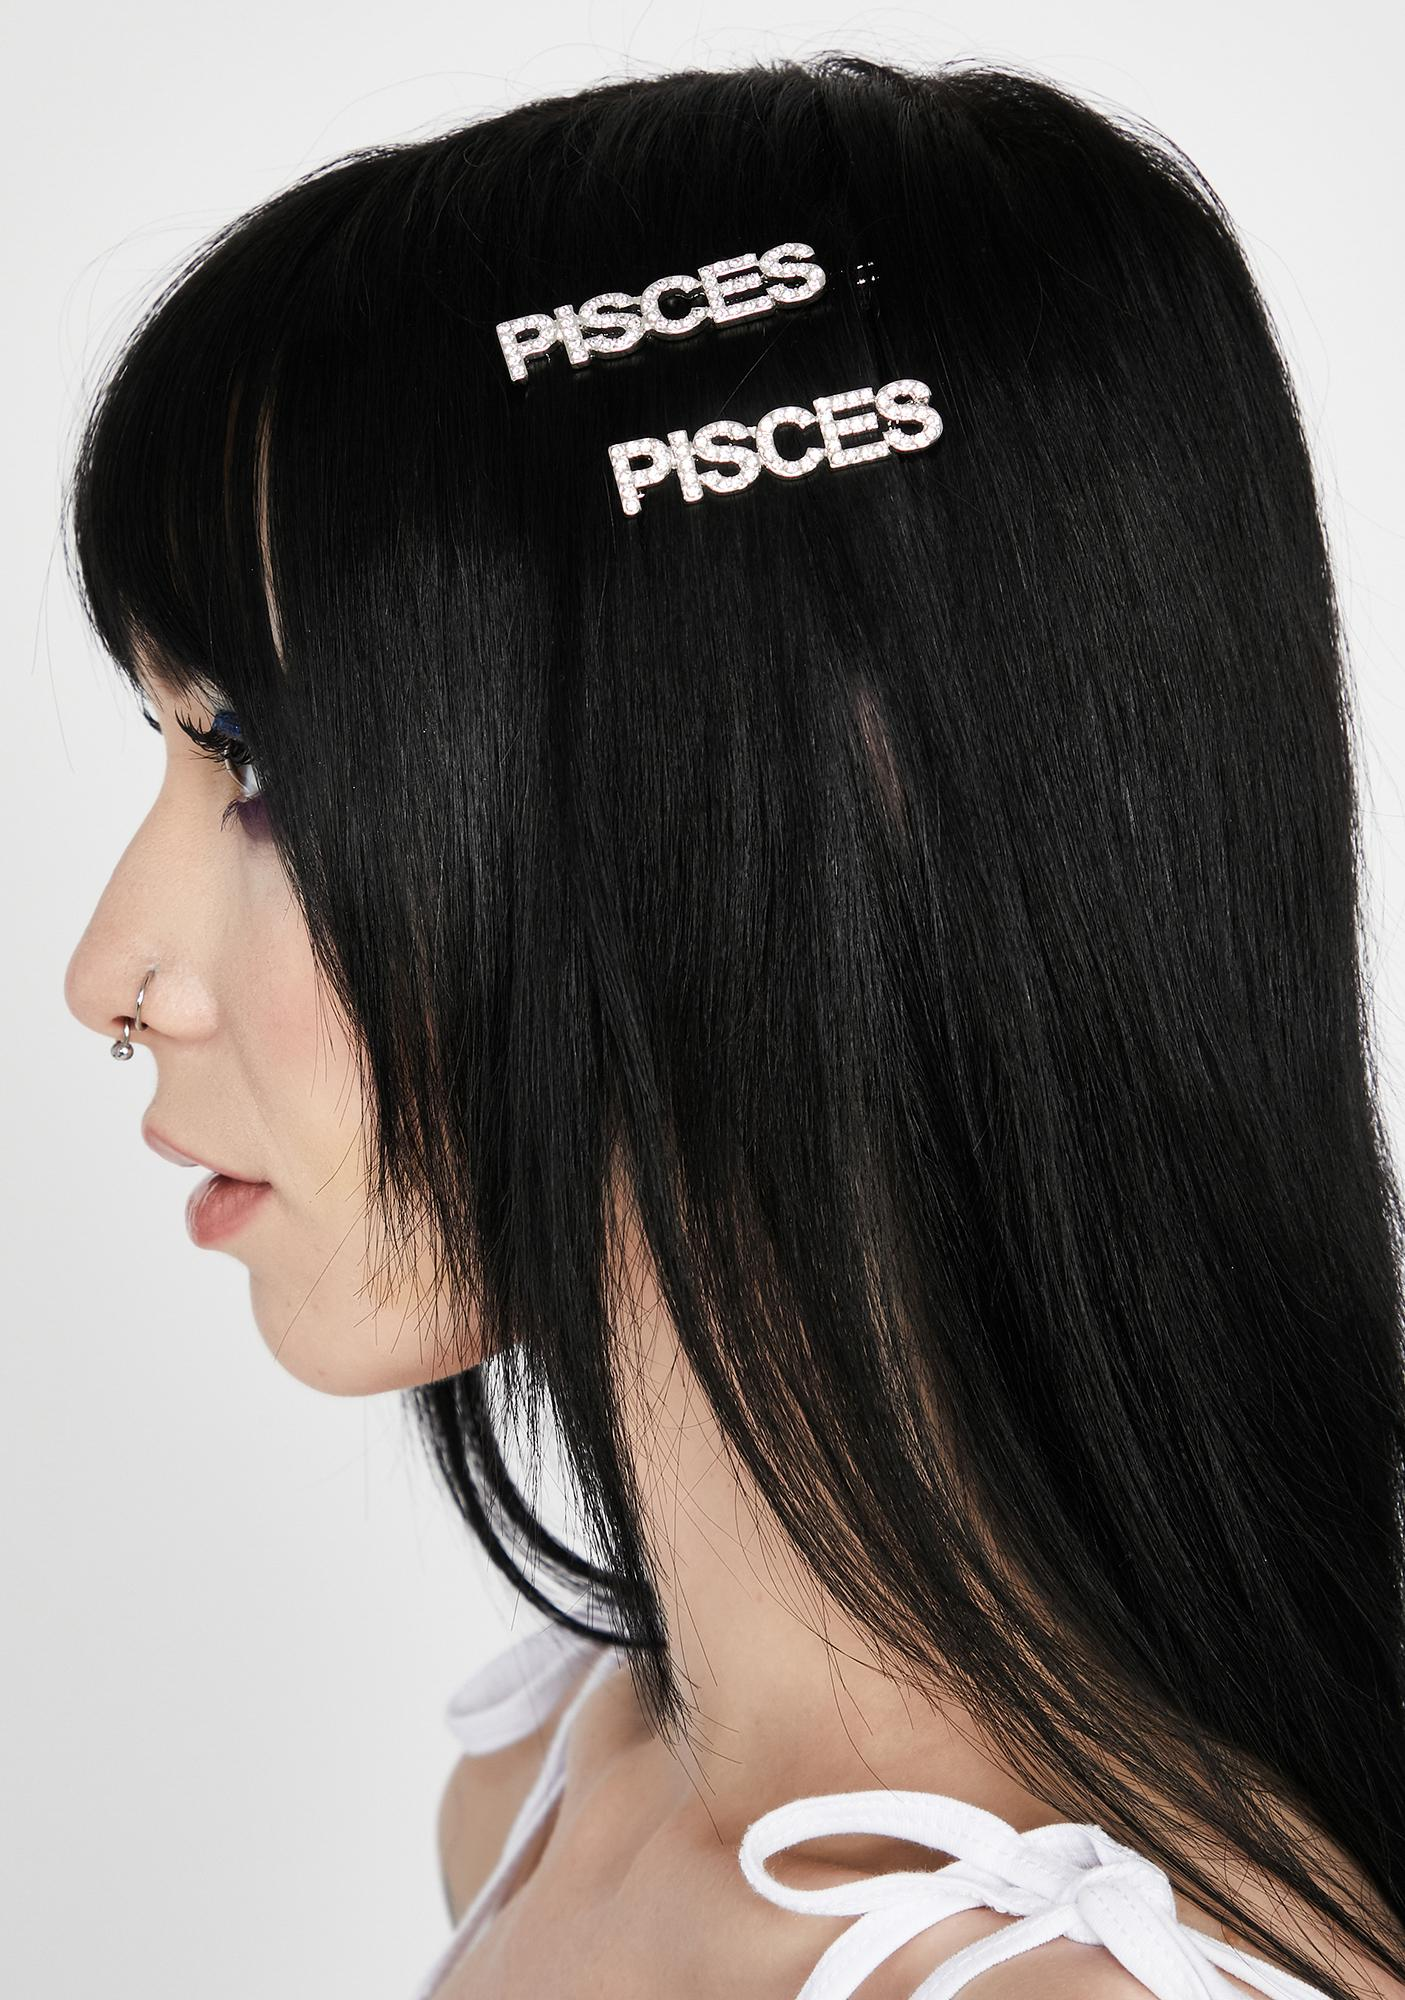 Positively Pisces Hair Pins